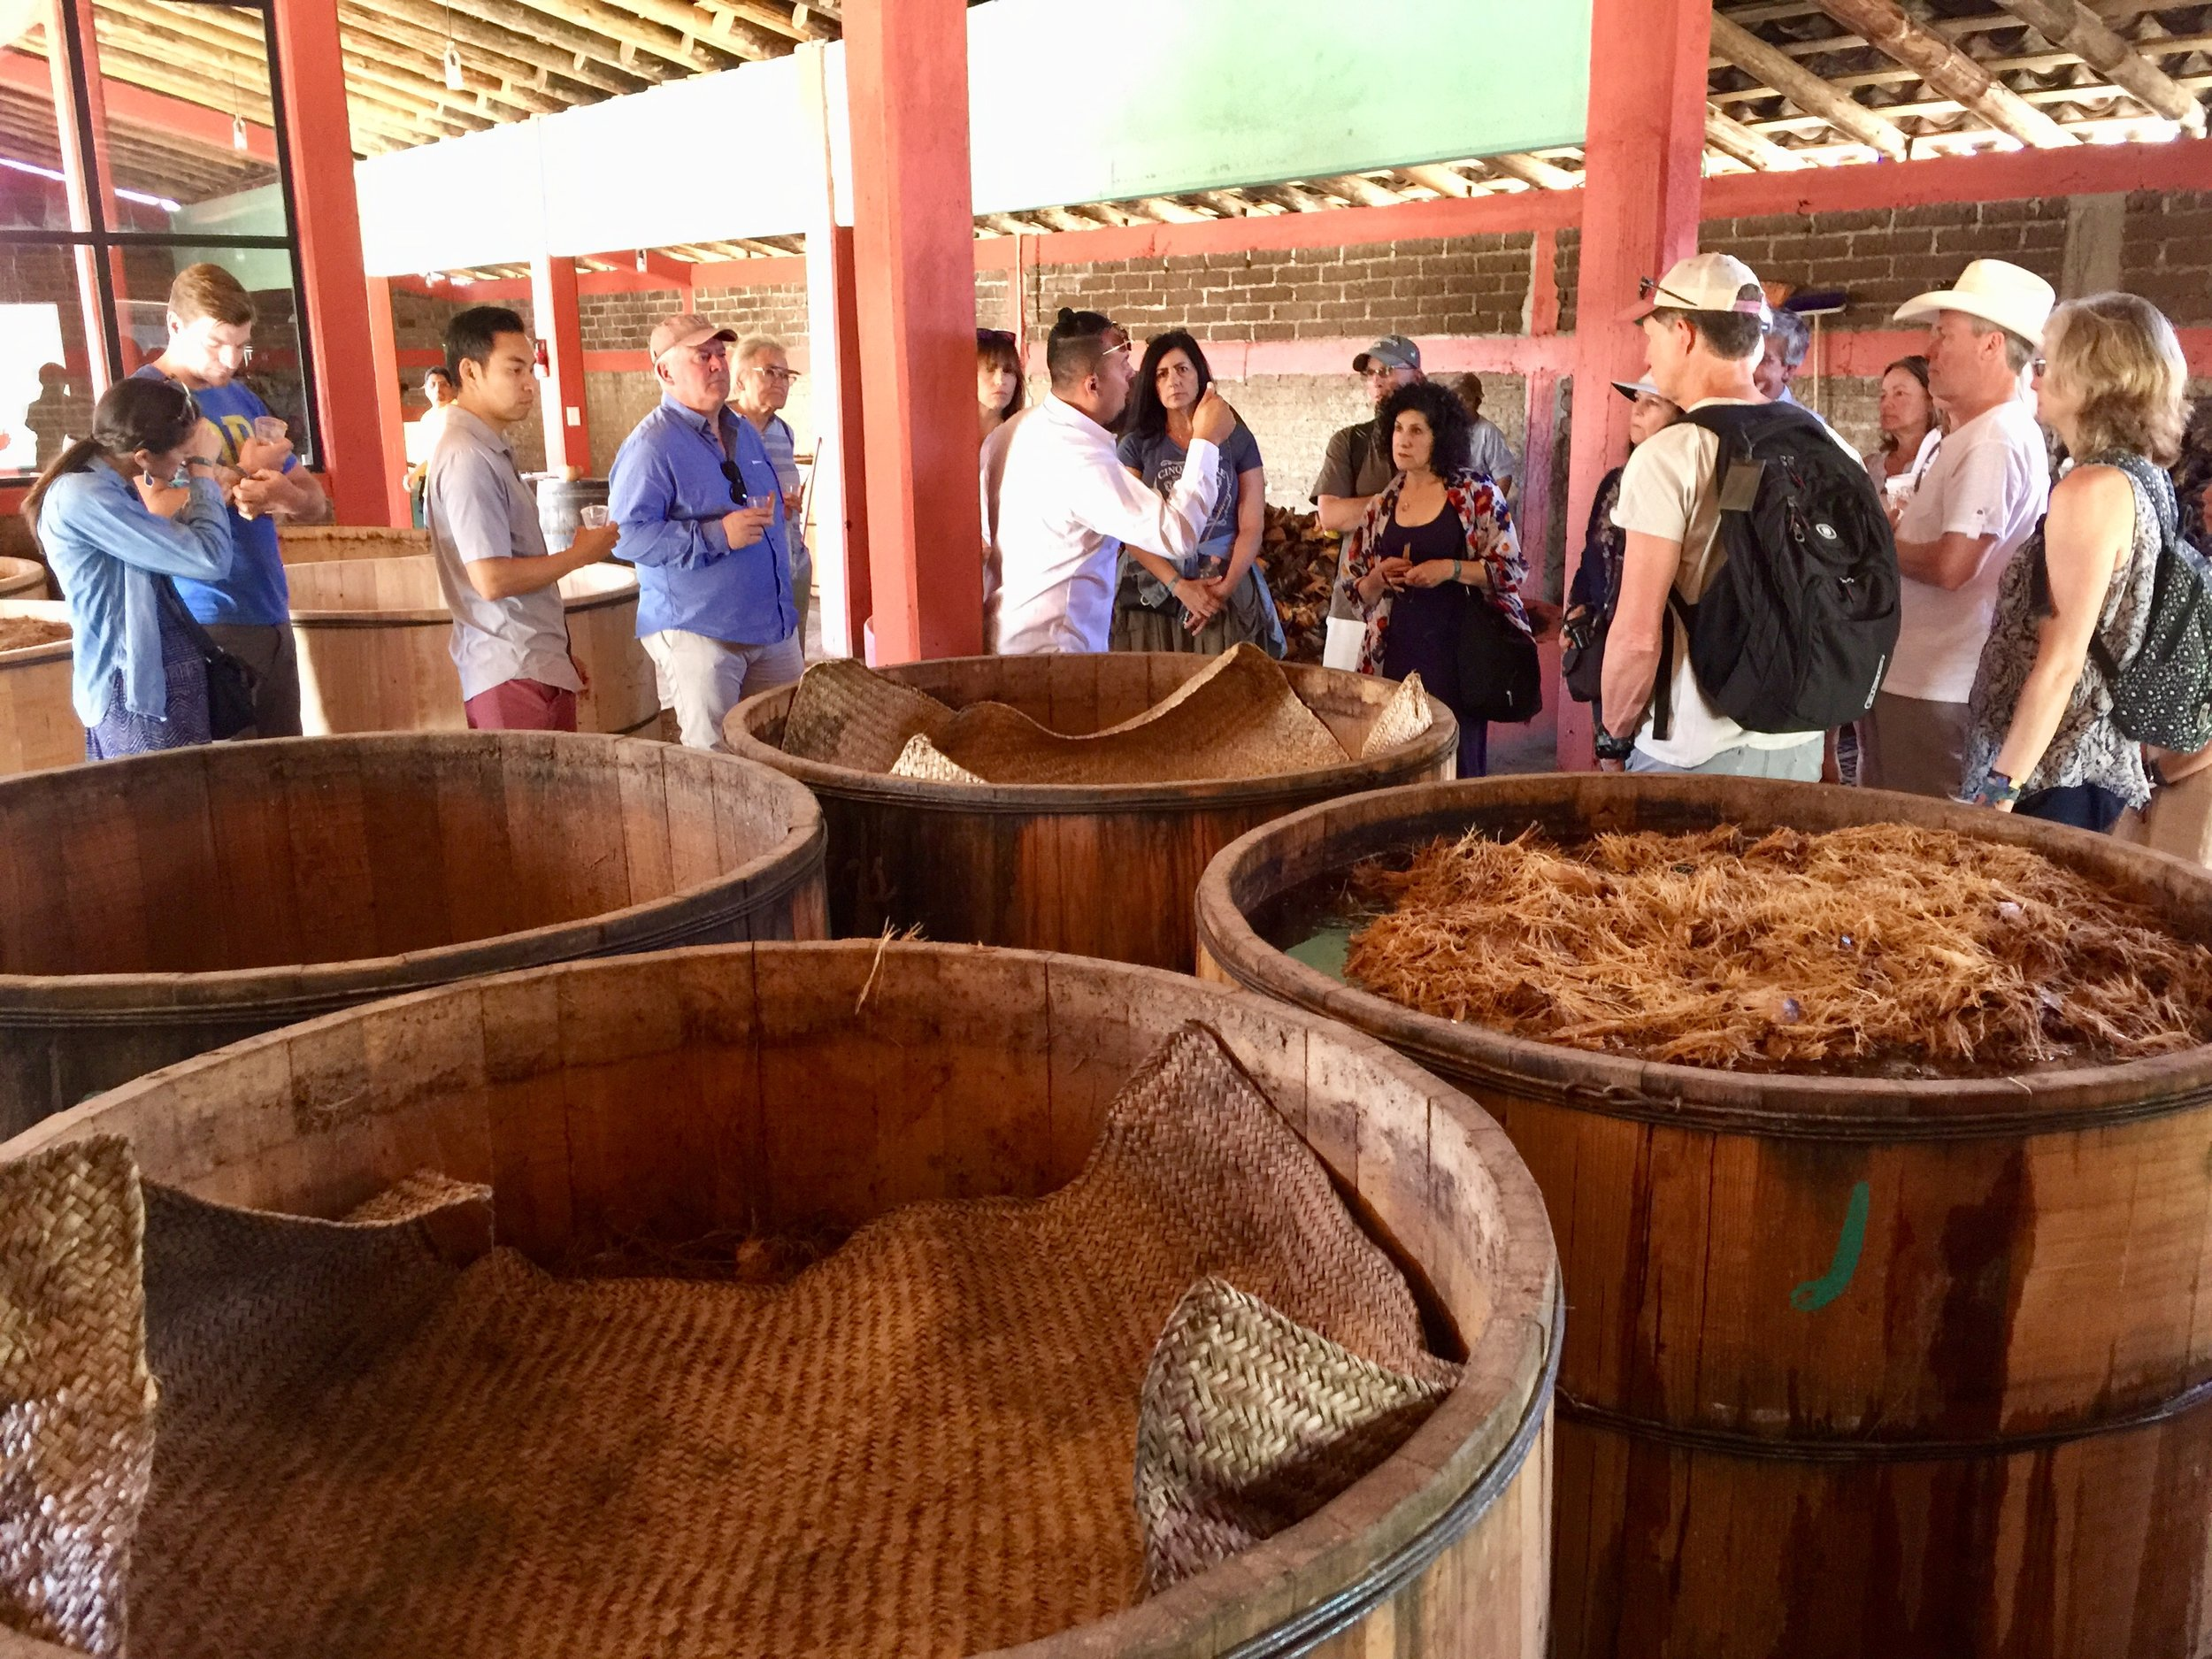 Roasted agave going through primary fermentation at Gracios a Dios Distillery.